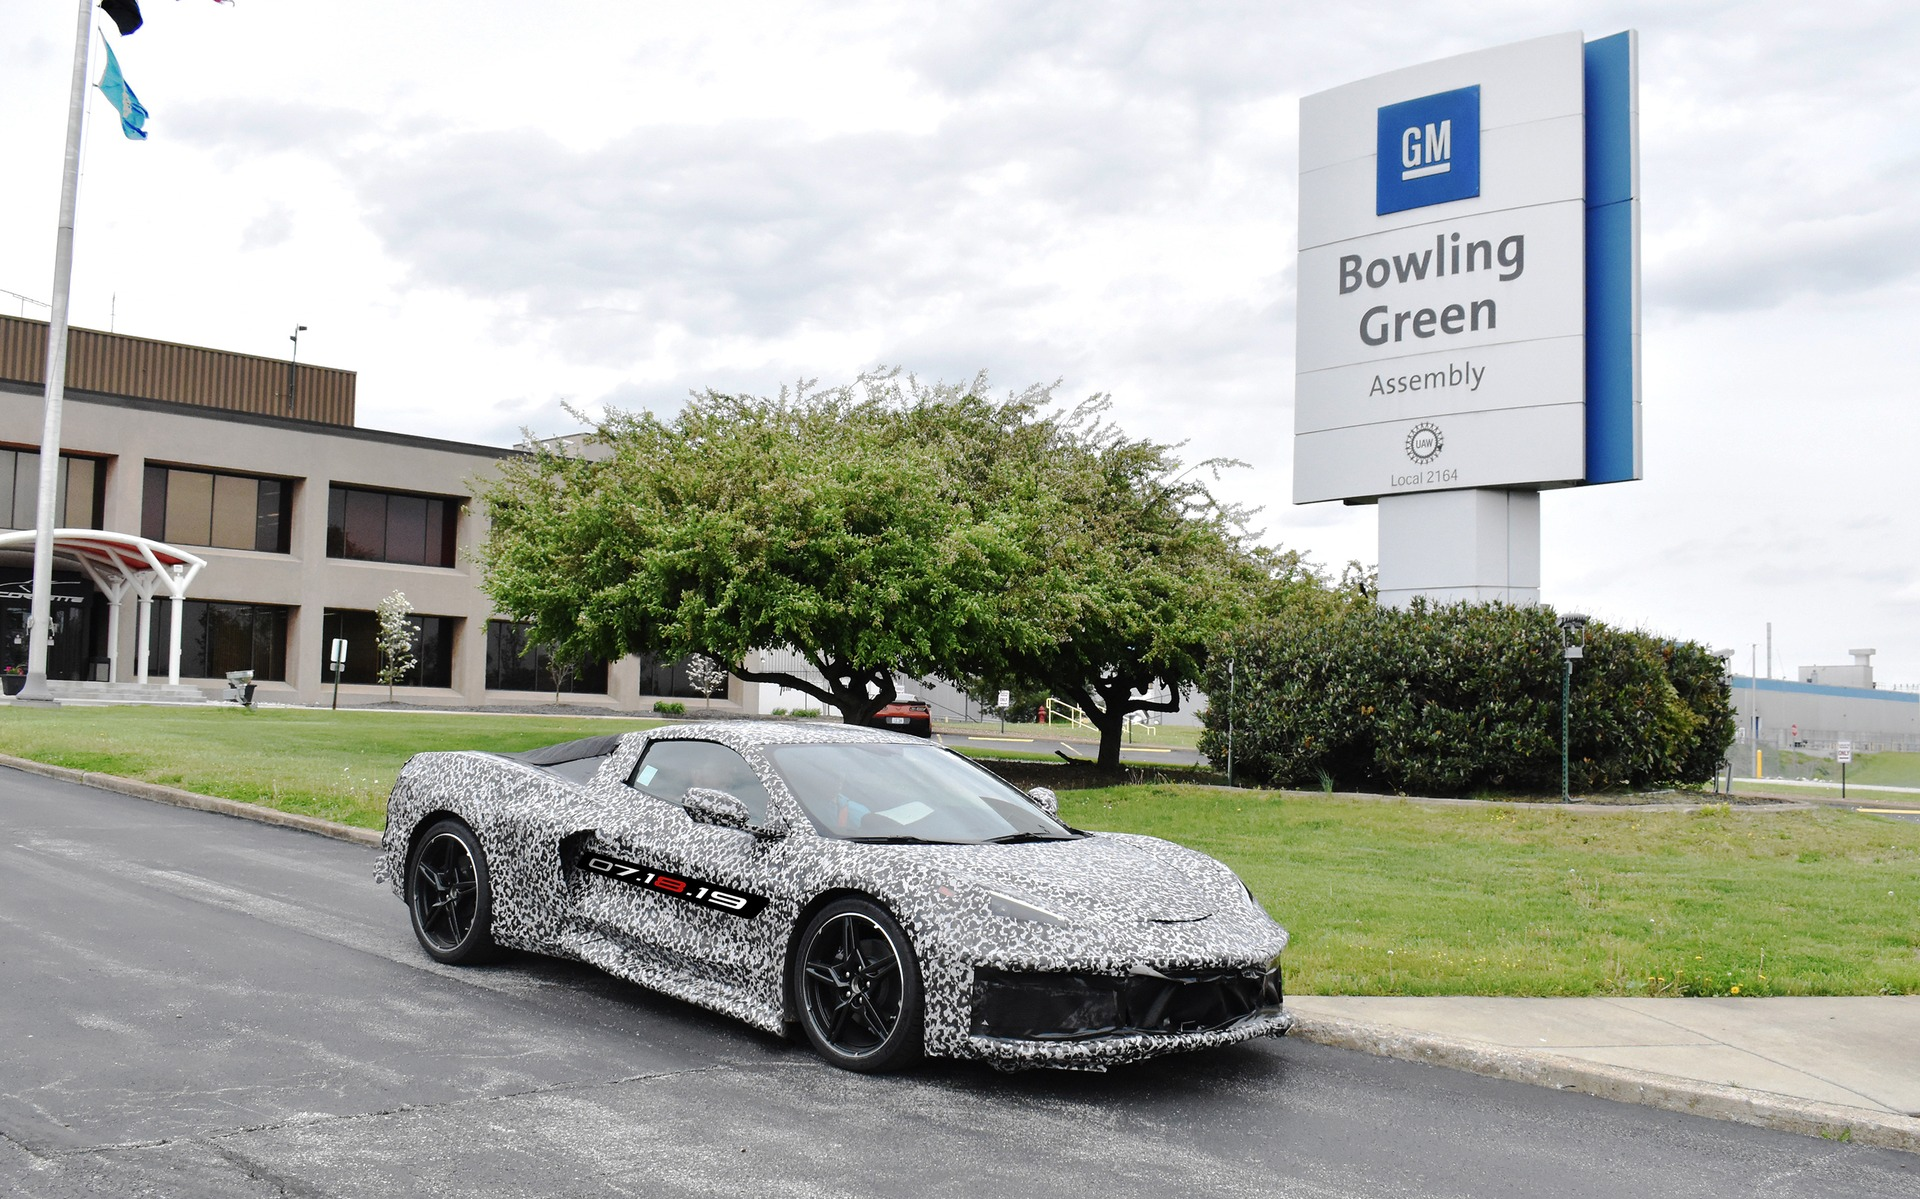 Production Of 2020 Chevrolet Corvette To Add Second Shift 400 Jobs